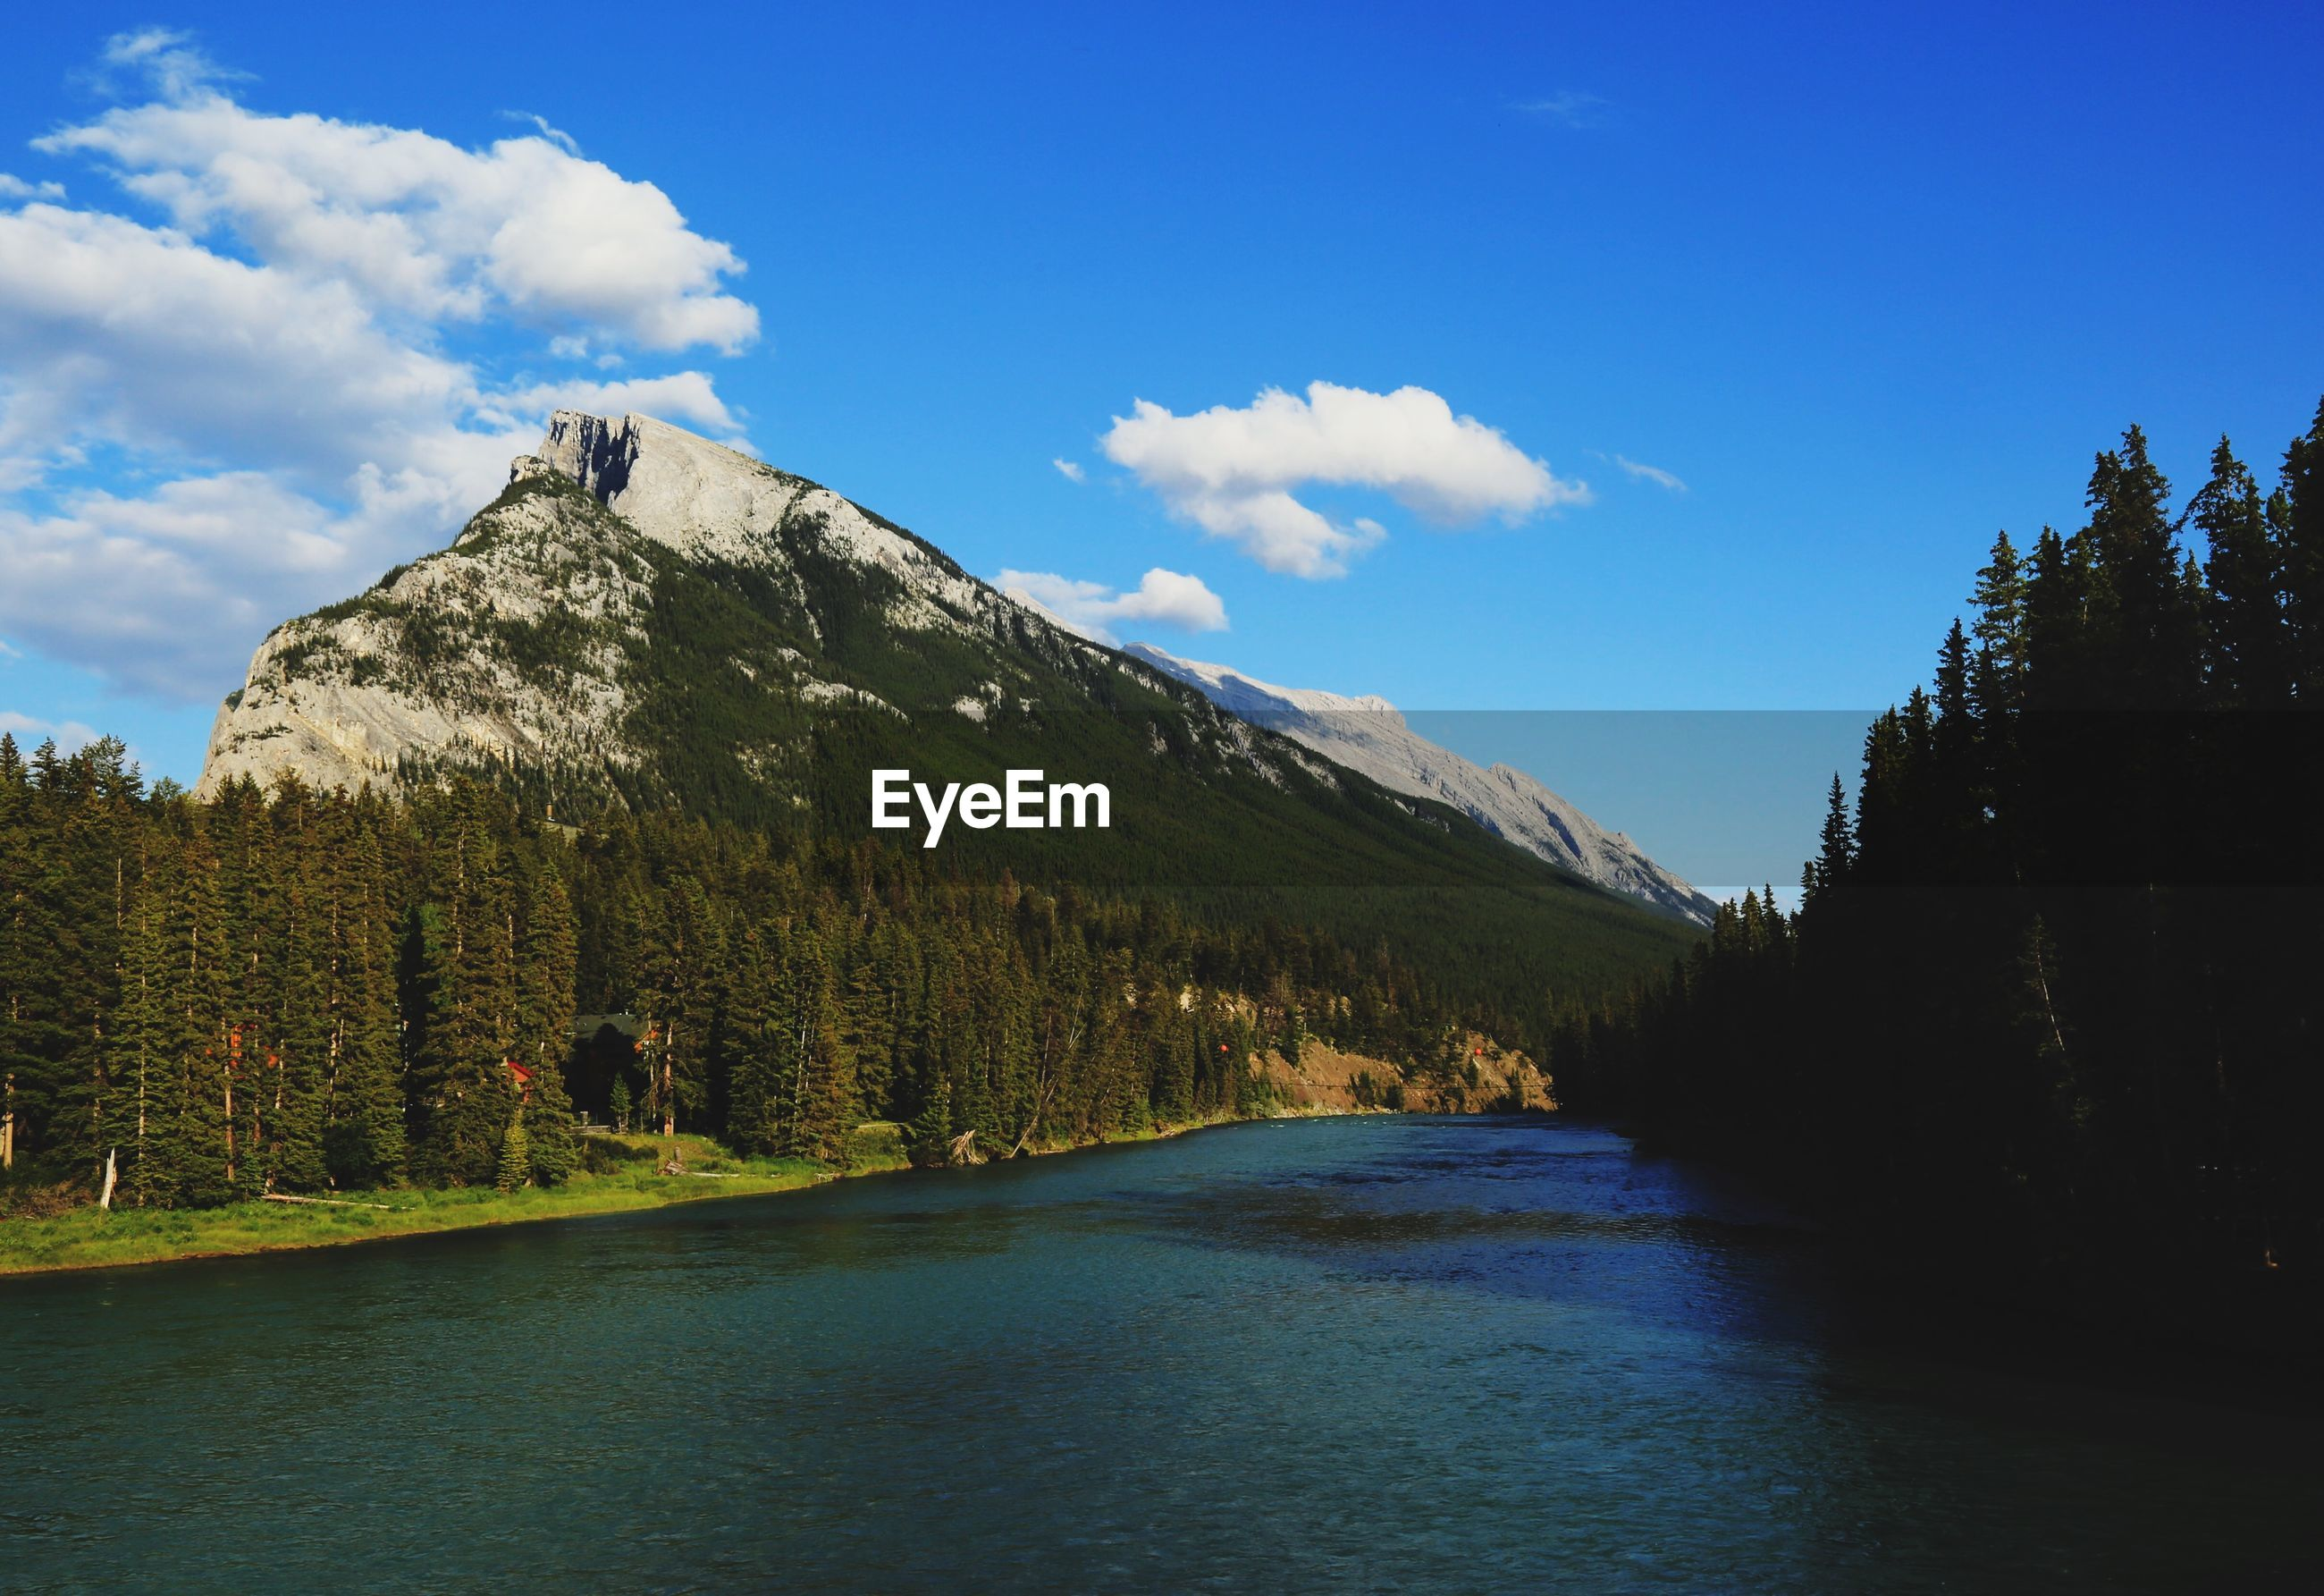 mountain, sky, tranquil scene, tranquility, scenics, water, beauty in nature, nature, blue, waterfront, tree, cloud - sky, mountain range, cloud, lake, idyllic, river, non-urban scene, day, landscape